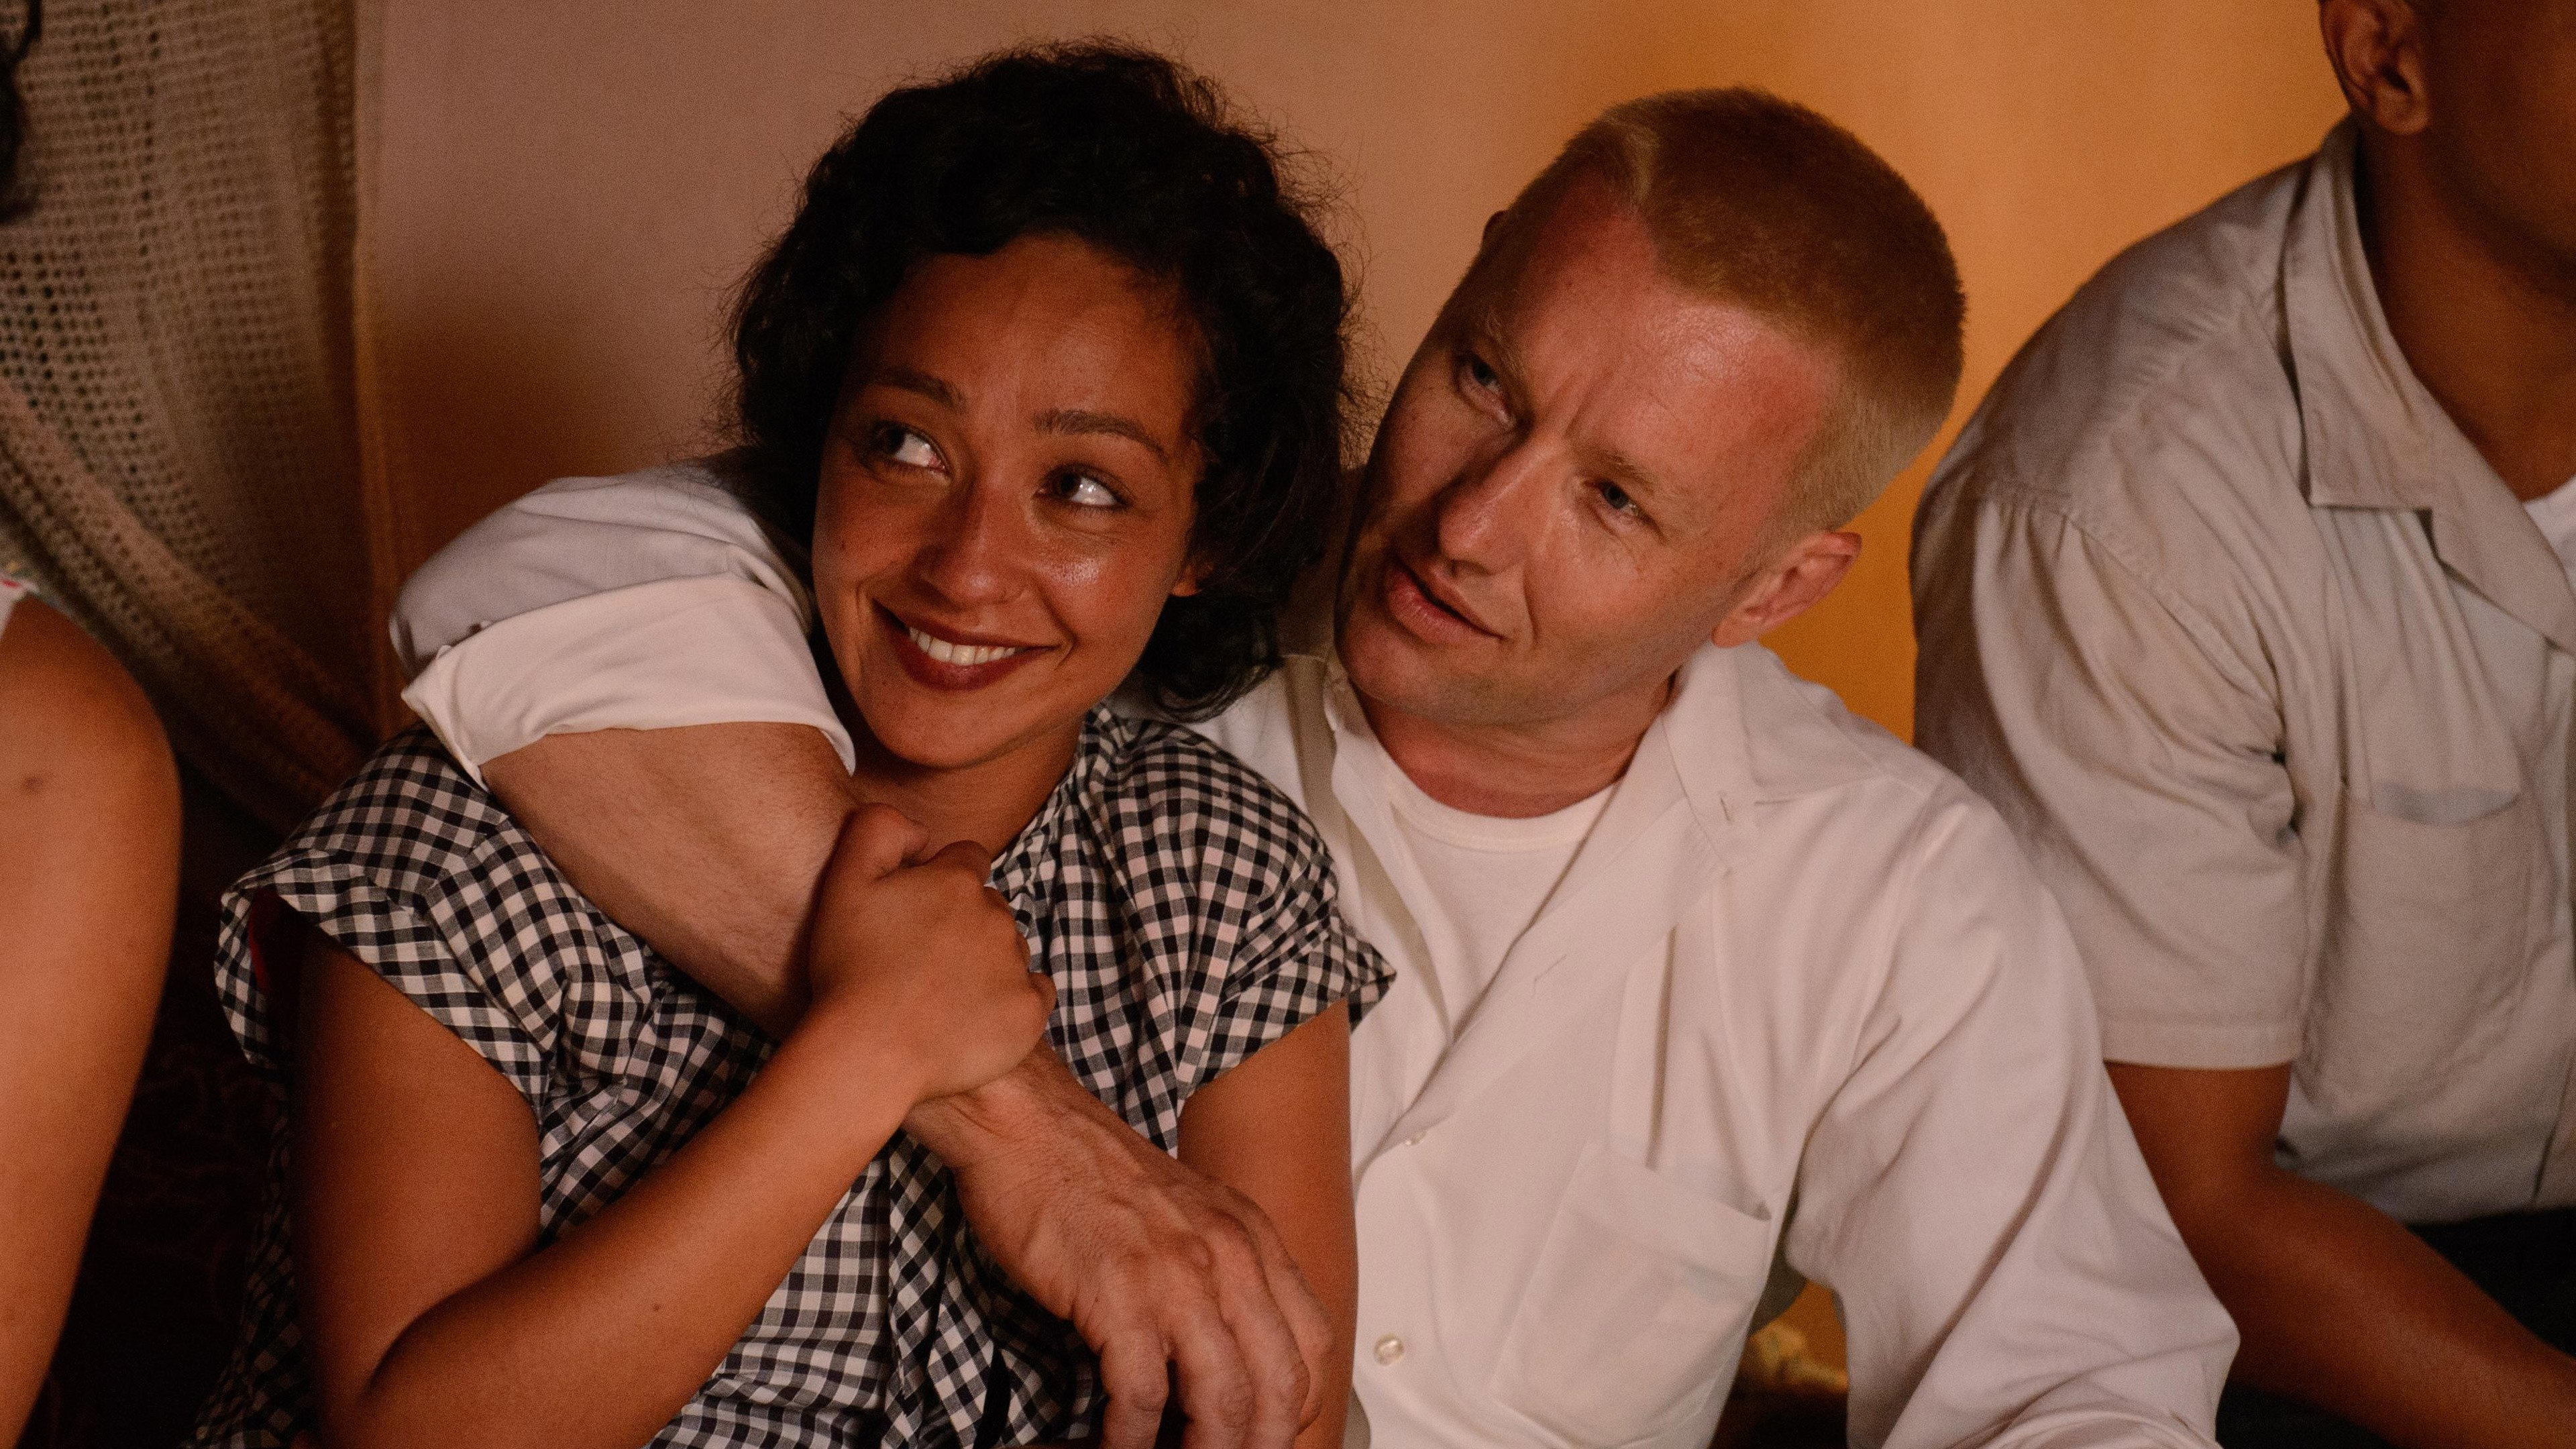 Ruth Negga and Joel Edgerton star in Loving